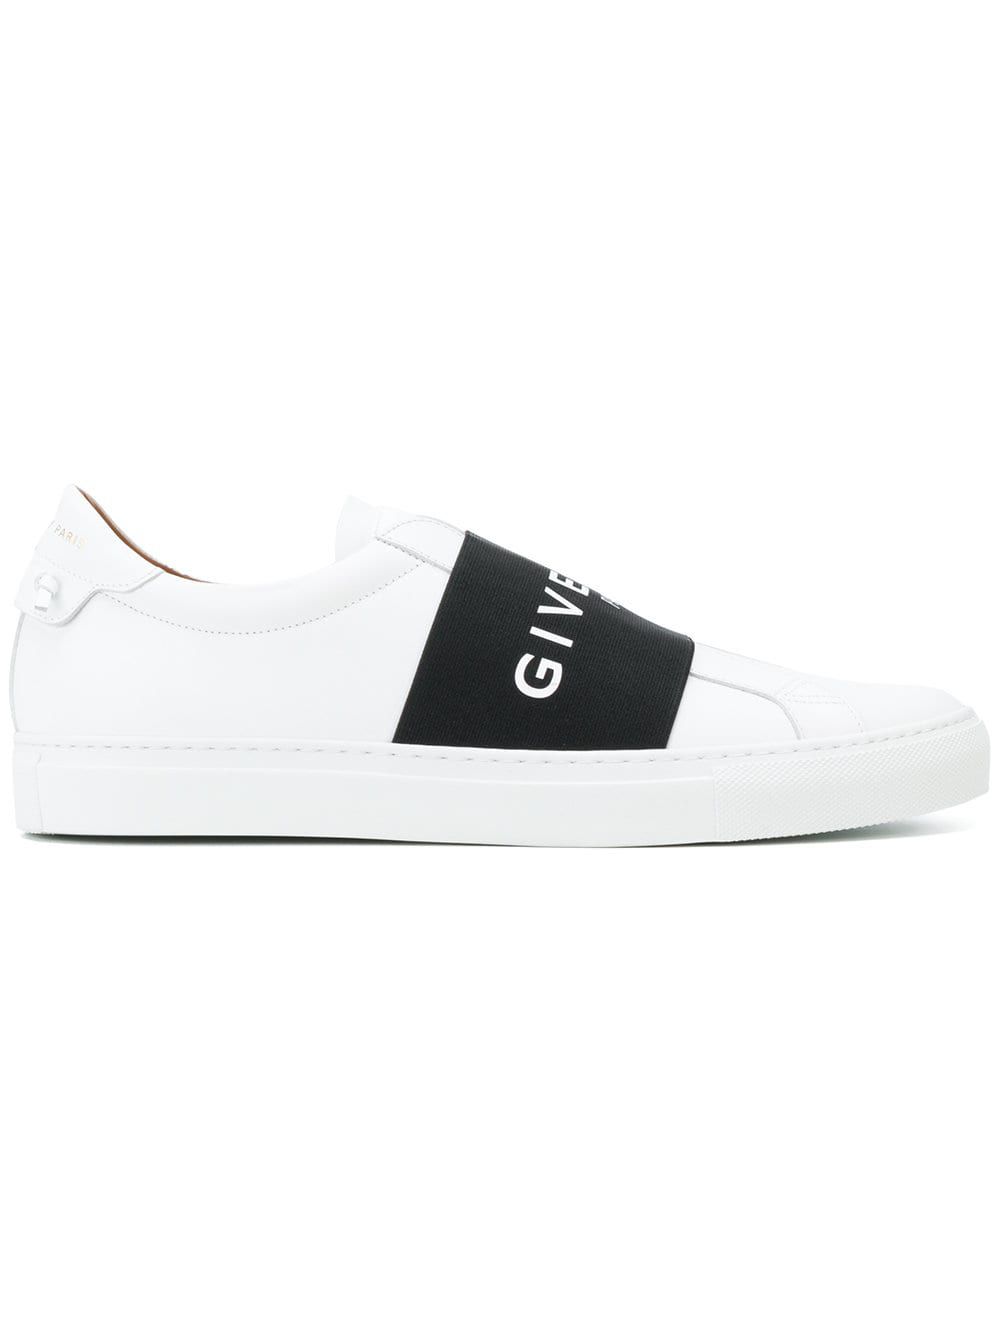 sneakers-givenchy-lesthete-lille.jpg